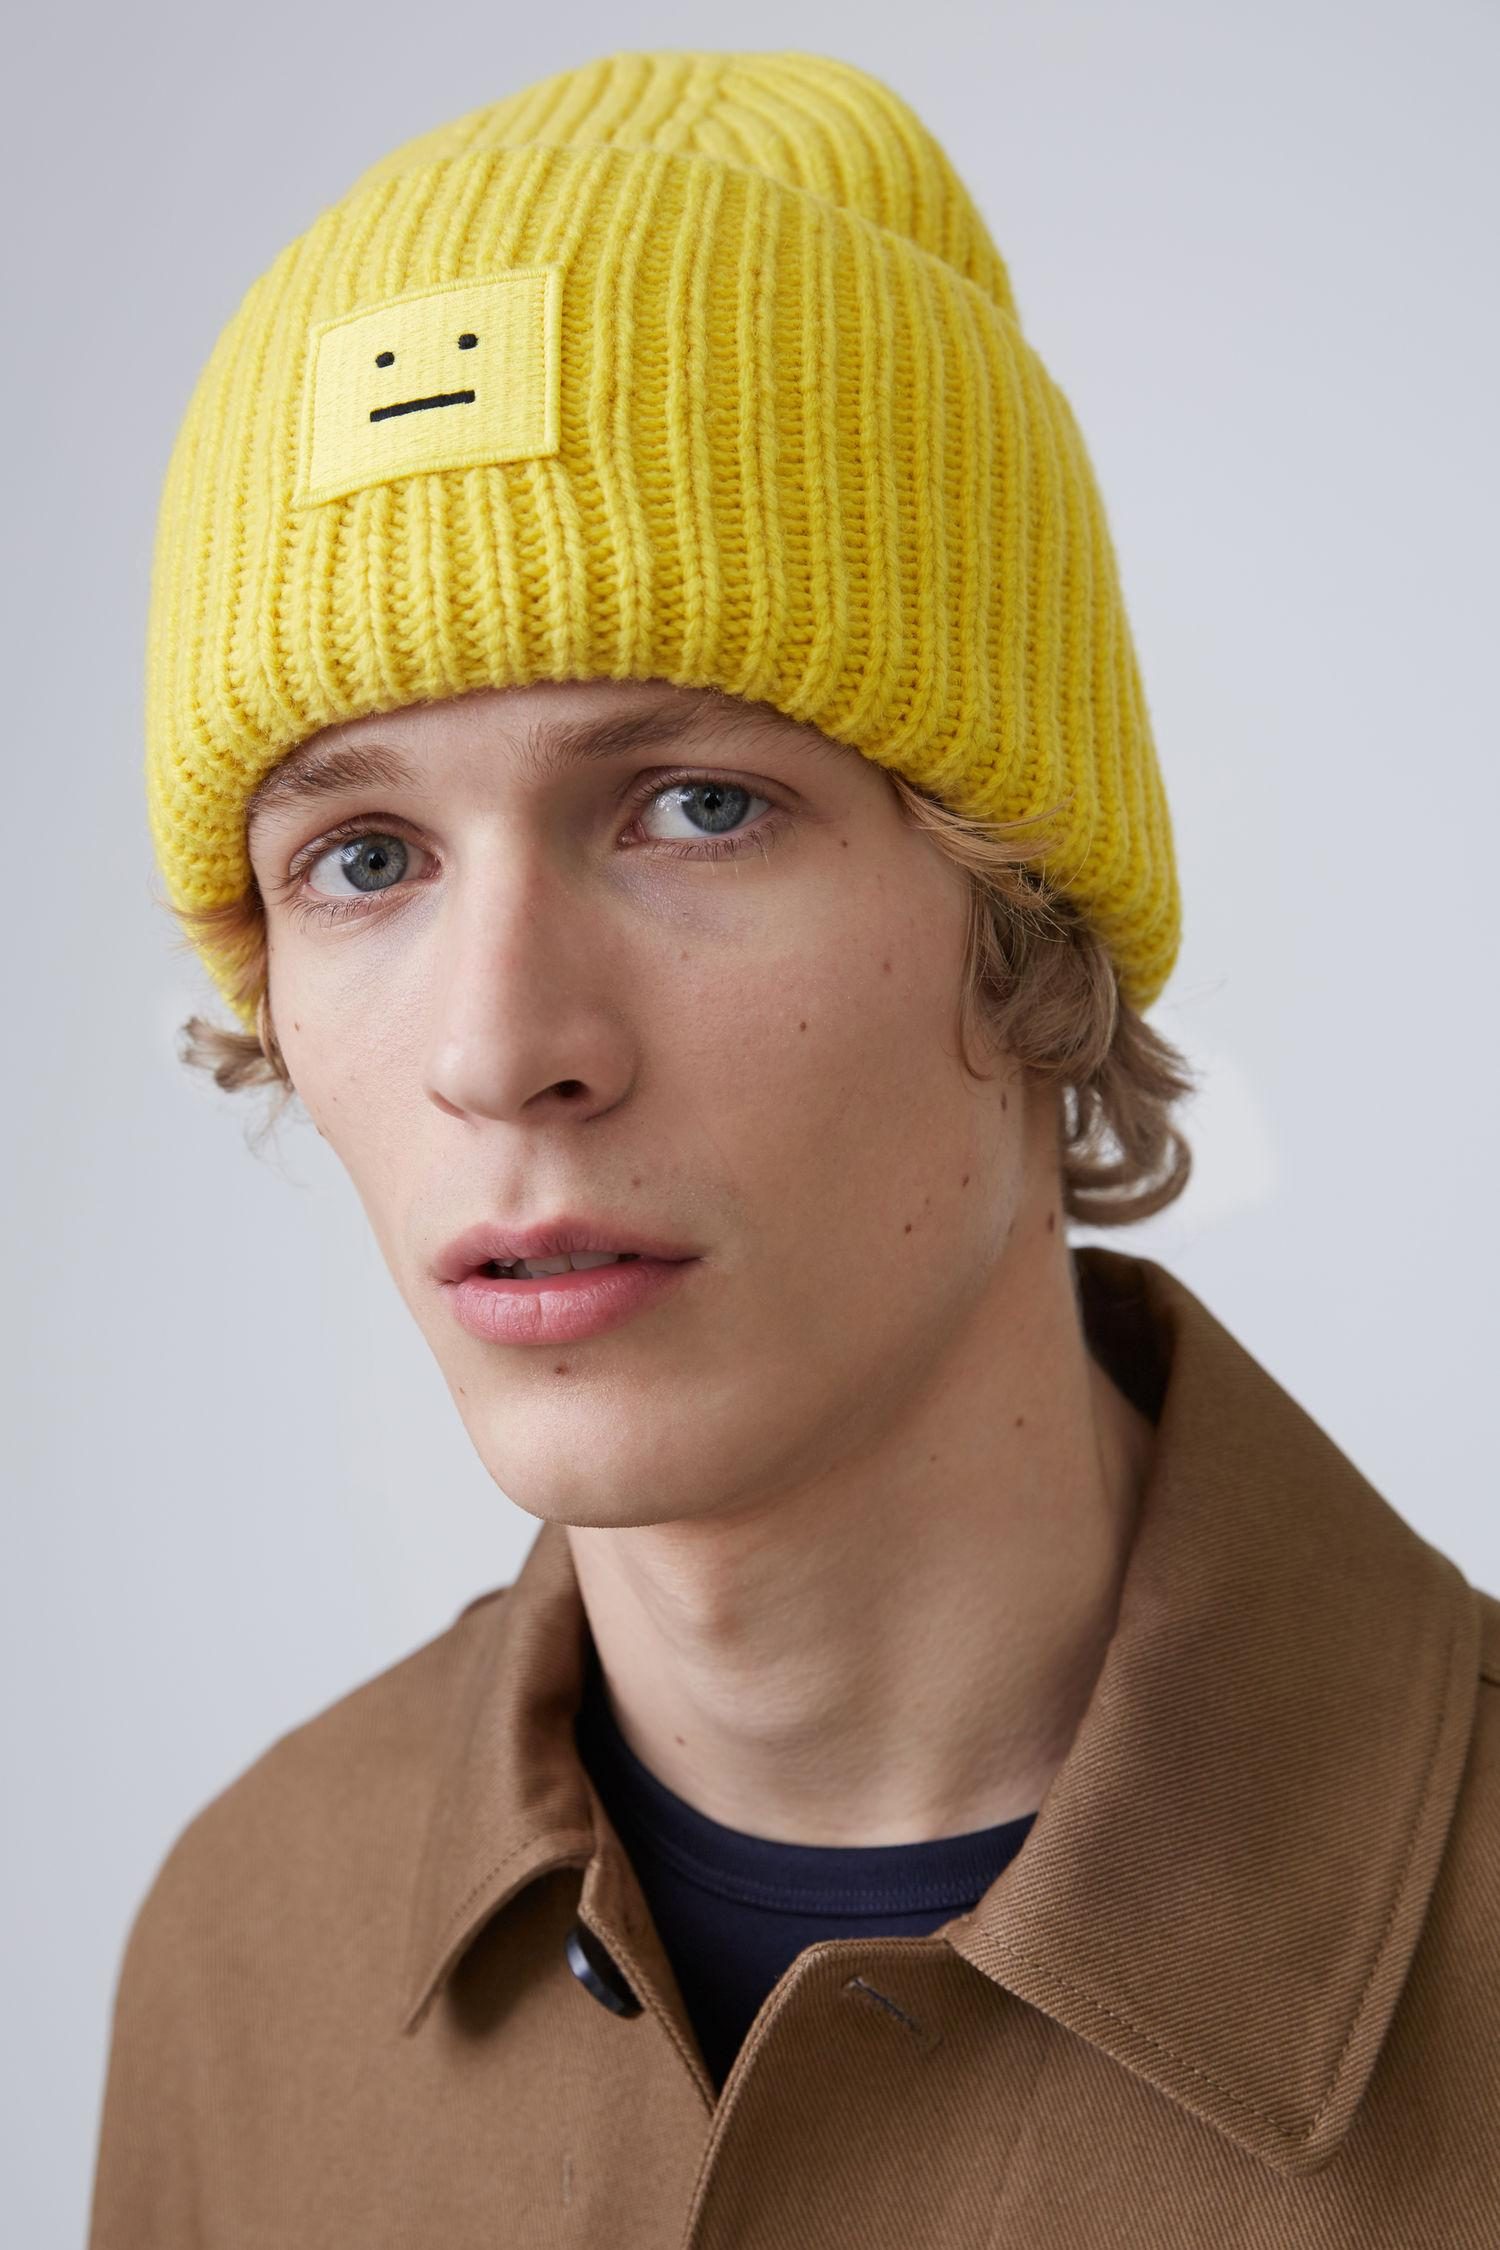 Lyst - Acne Studios Ribbed Beanie Hat canary Yellow in Yellow 899c89da00e